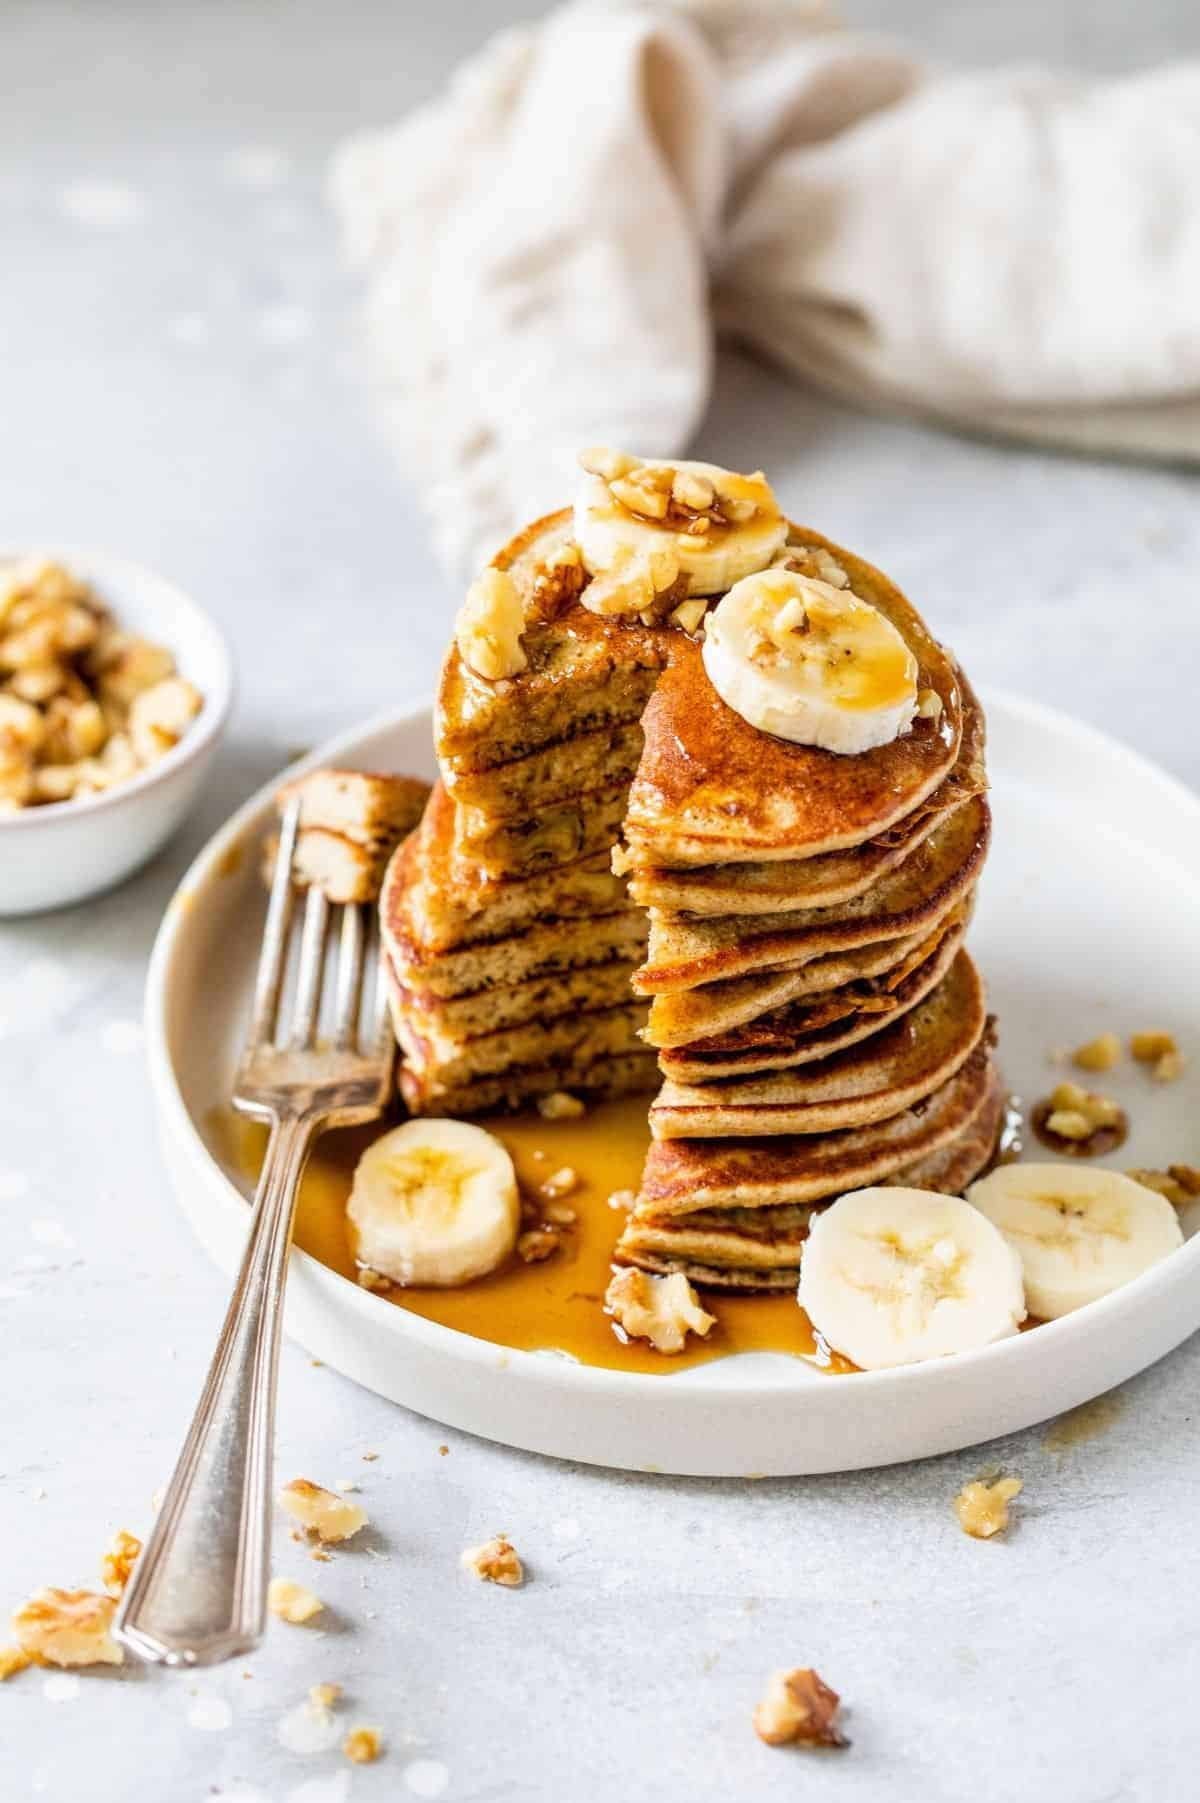 serving of banana oatmeal pancakes served with banana slices and chopped walnuts